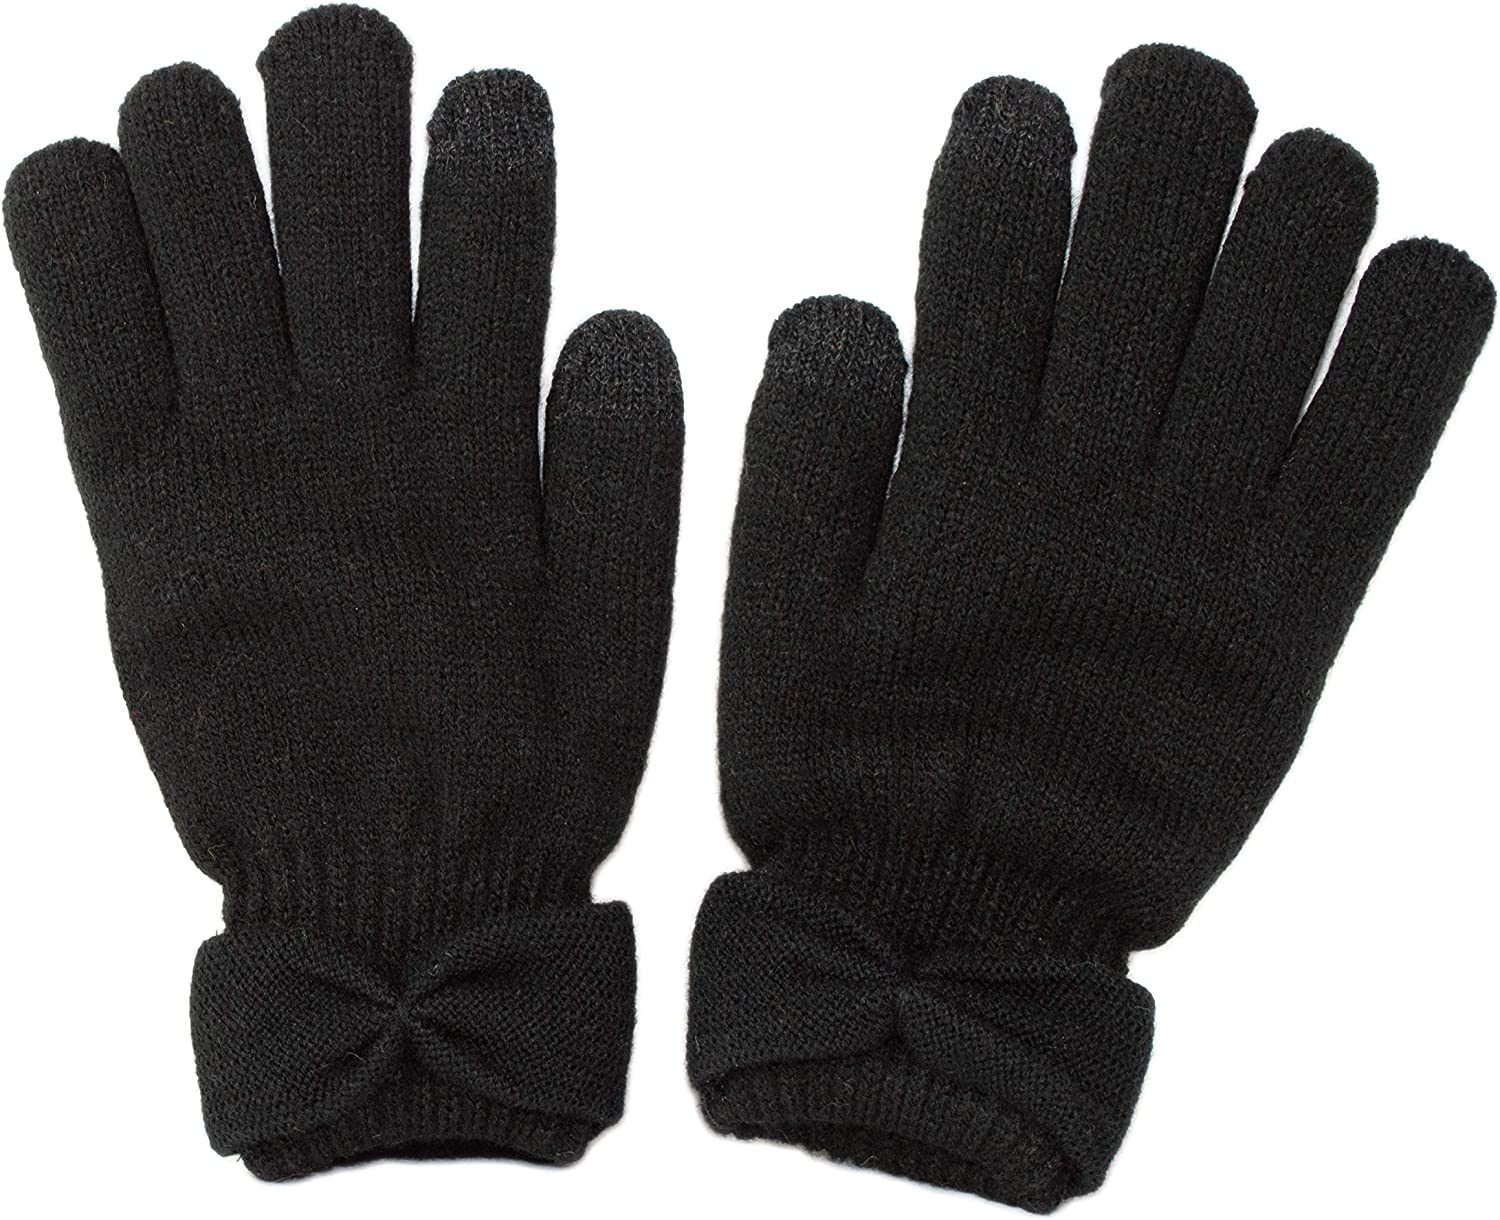 Cute Classic Black Warm Winter Double Layer Chenille Lined Touch Screen Tech Gloves with Bow